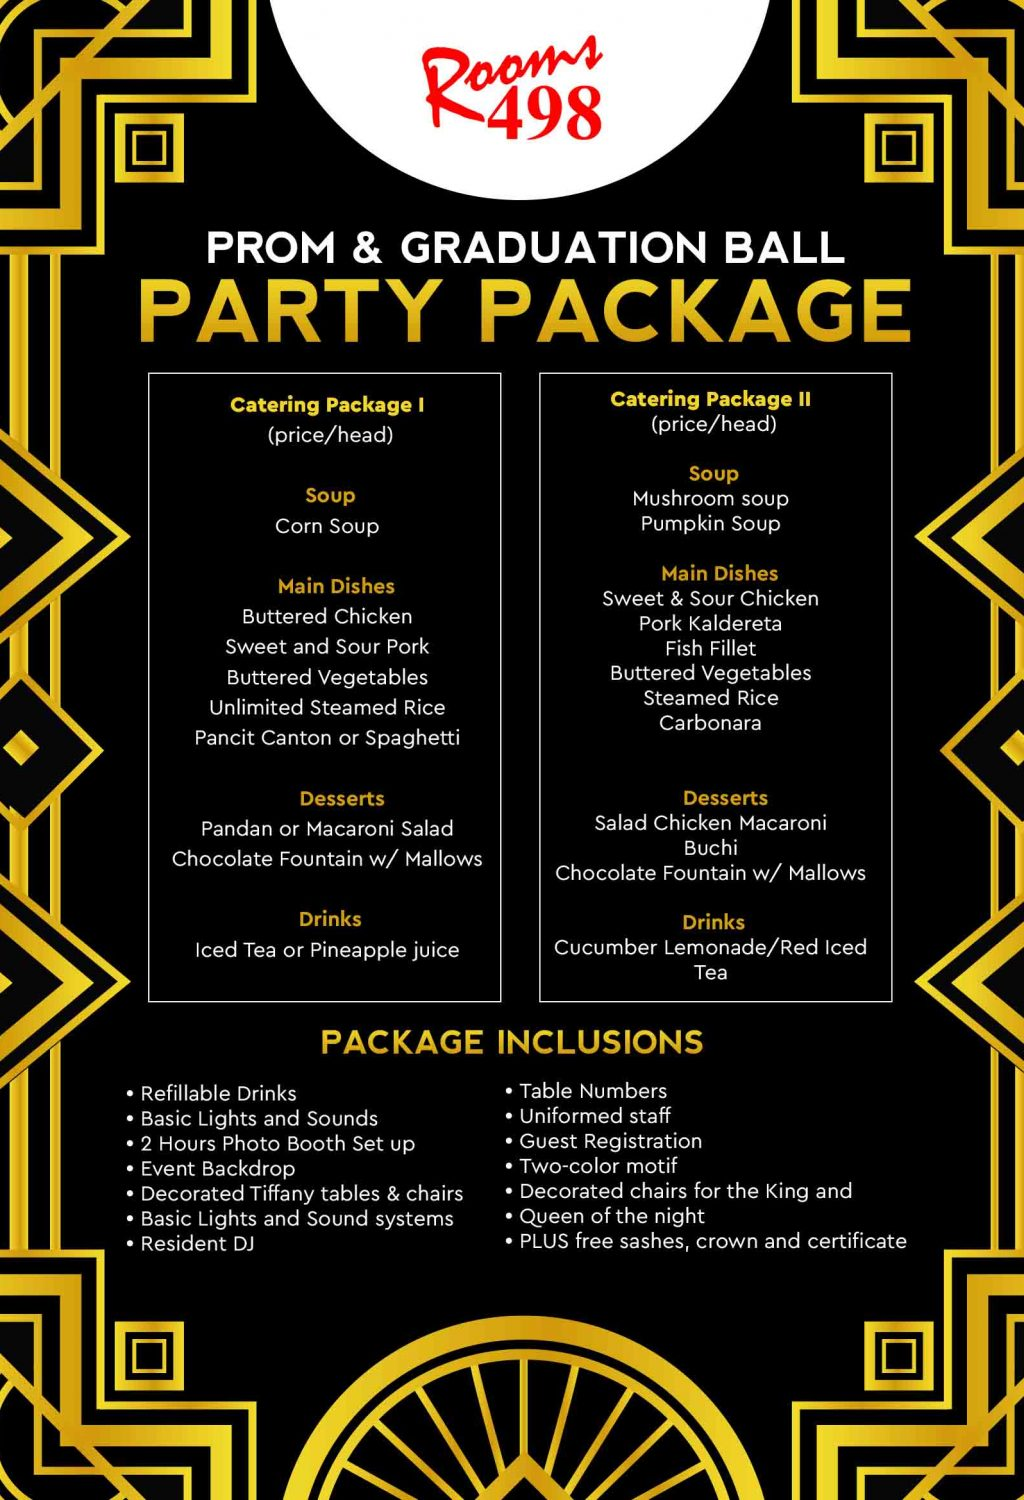 Prom and GradBall Party Packages rooms498.com